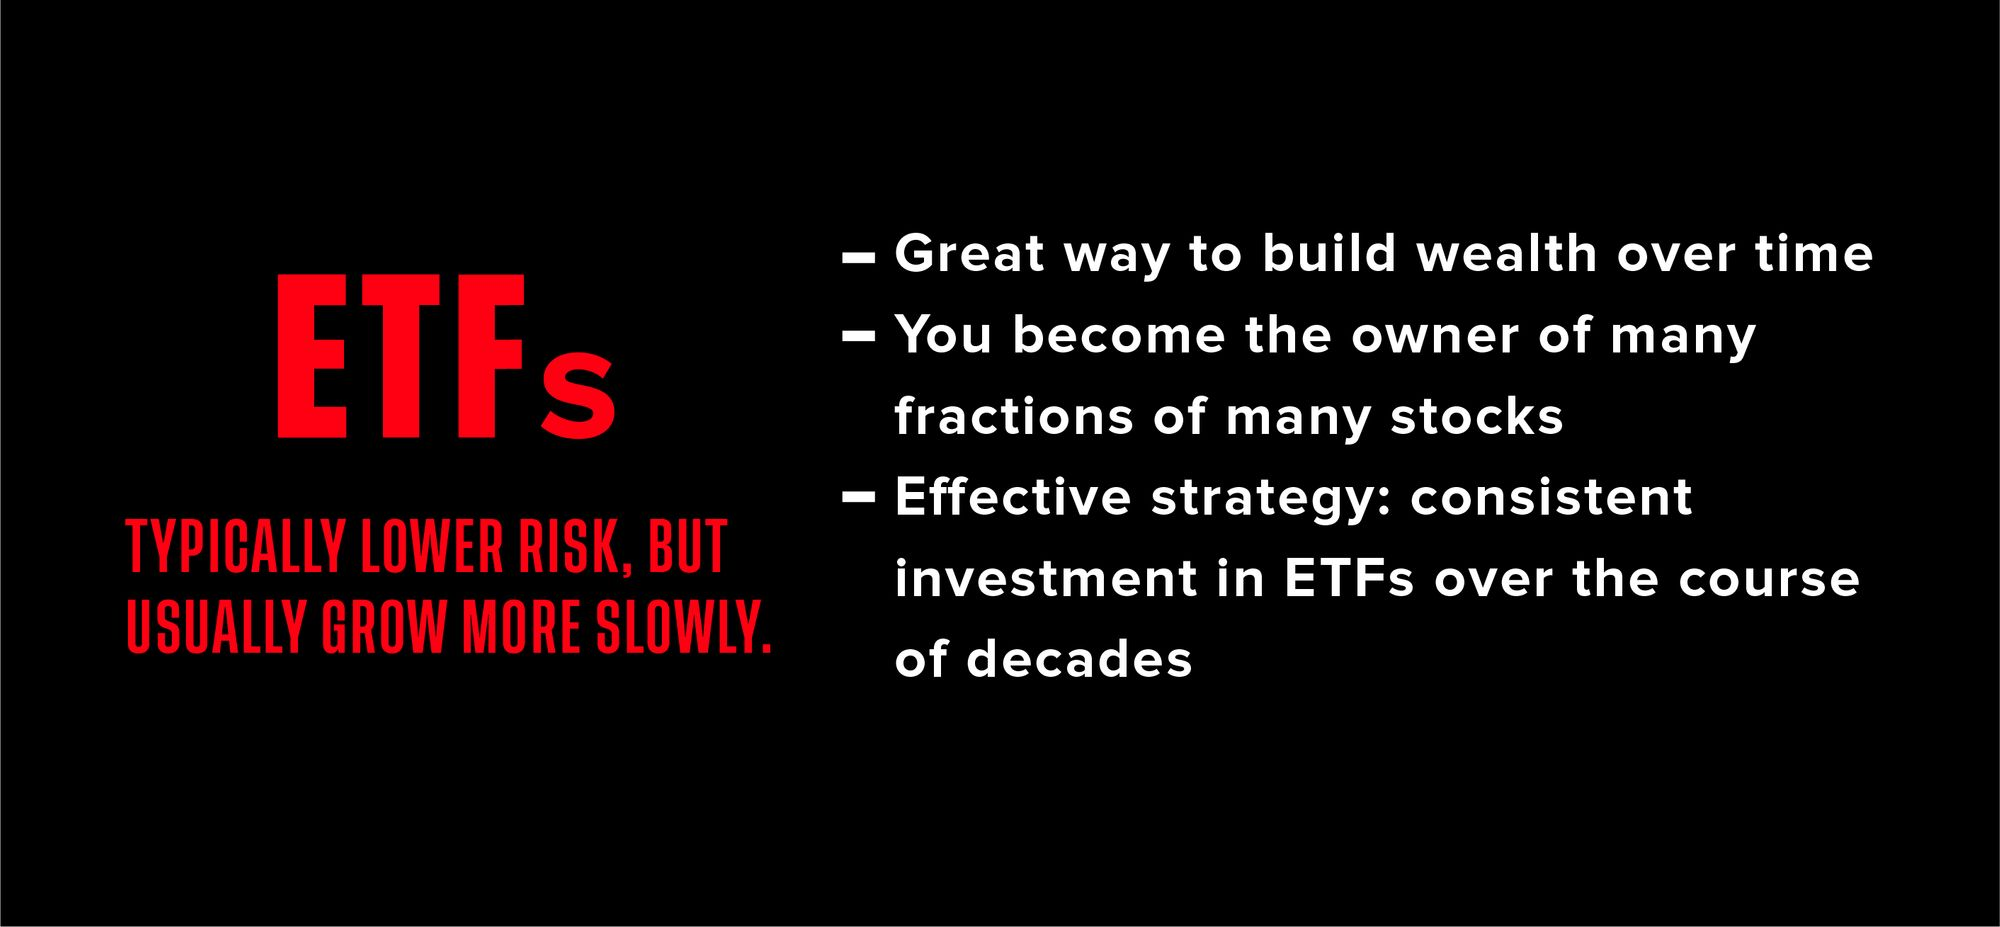 Graphic explaining ETFS. Text says: ETFs are typically lower risk, but usually grow more slowly. ETFs are a great way to build wealth over time. By buying into ETFs, you become the owner of many fractions of many stocks. Because these are generally low cost and generally well diversified, ETFs can have some of the best returns over time with some of the lowest risk to investors.